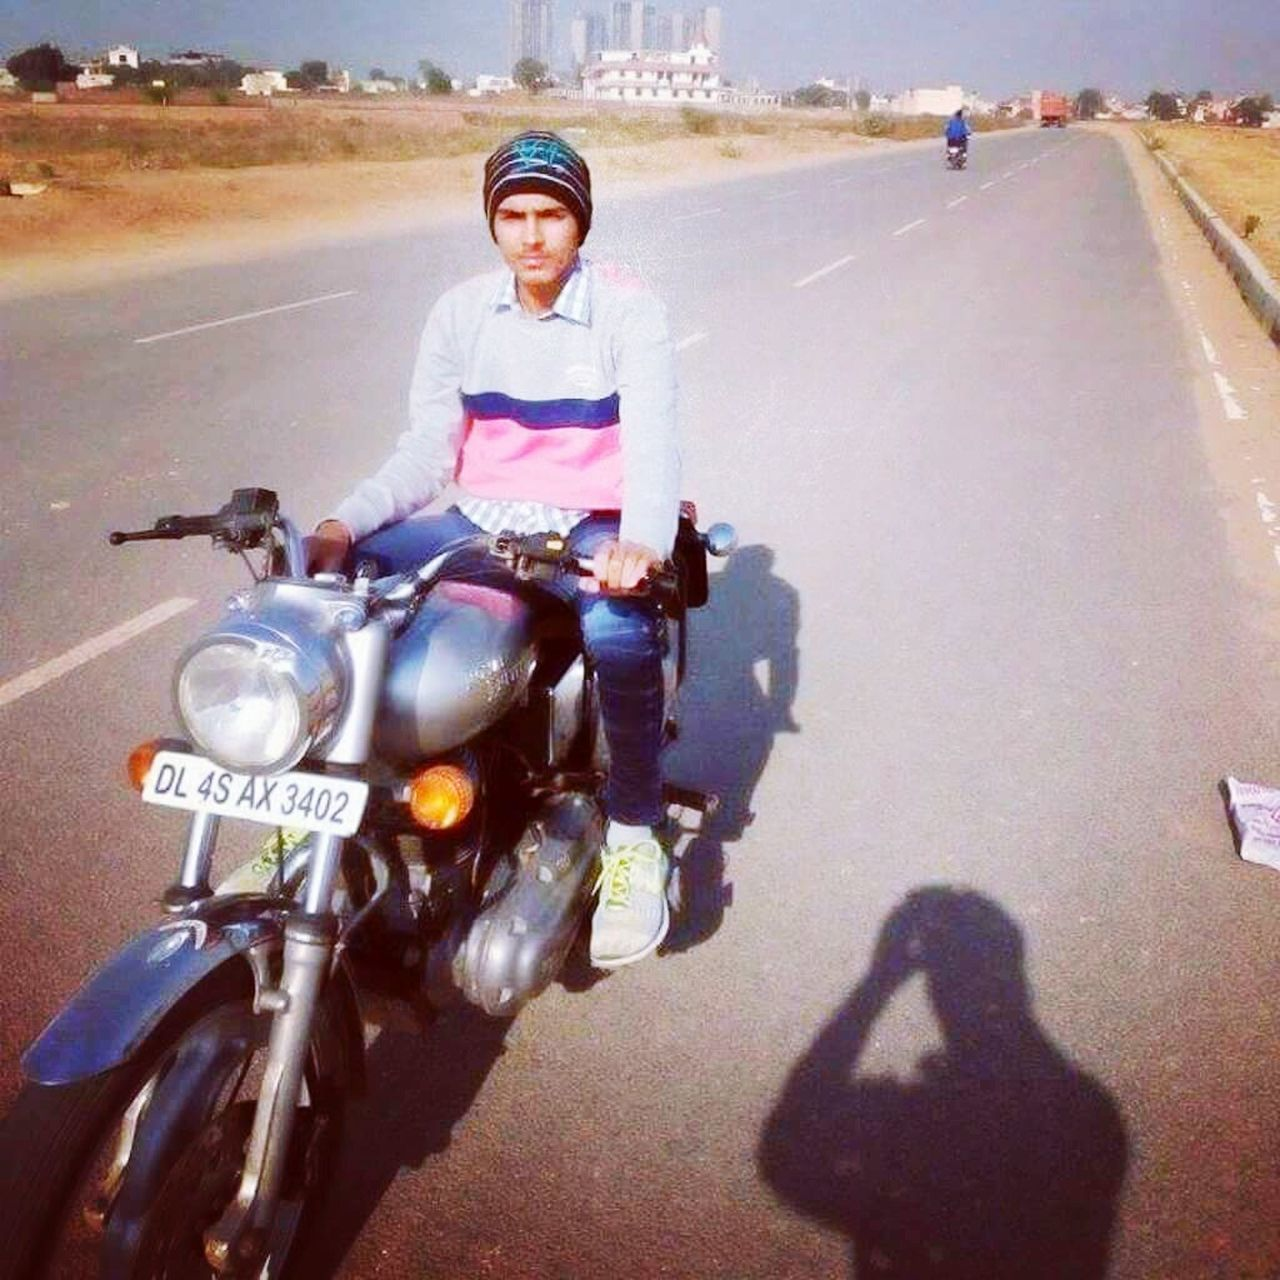 motorcycle, transportation, riding, helmet, portrait, crash helmet, road, looking at camera, land vehicle, mode of transport, front view, lifestyles, shadow, real people, street, headwear, sports helmet, one person, adventure, leisure activity, biker, scooter, sitting, outdoors, day, childhood, people, adult